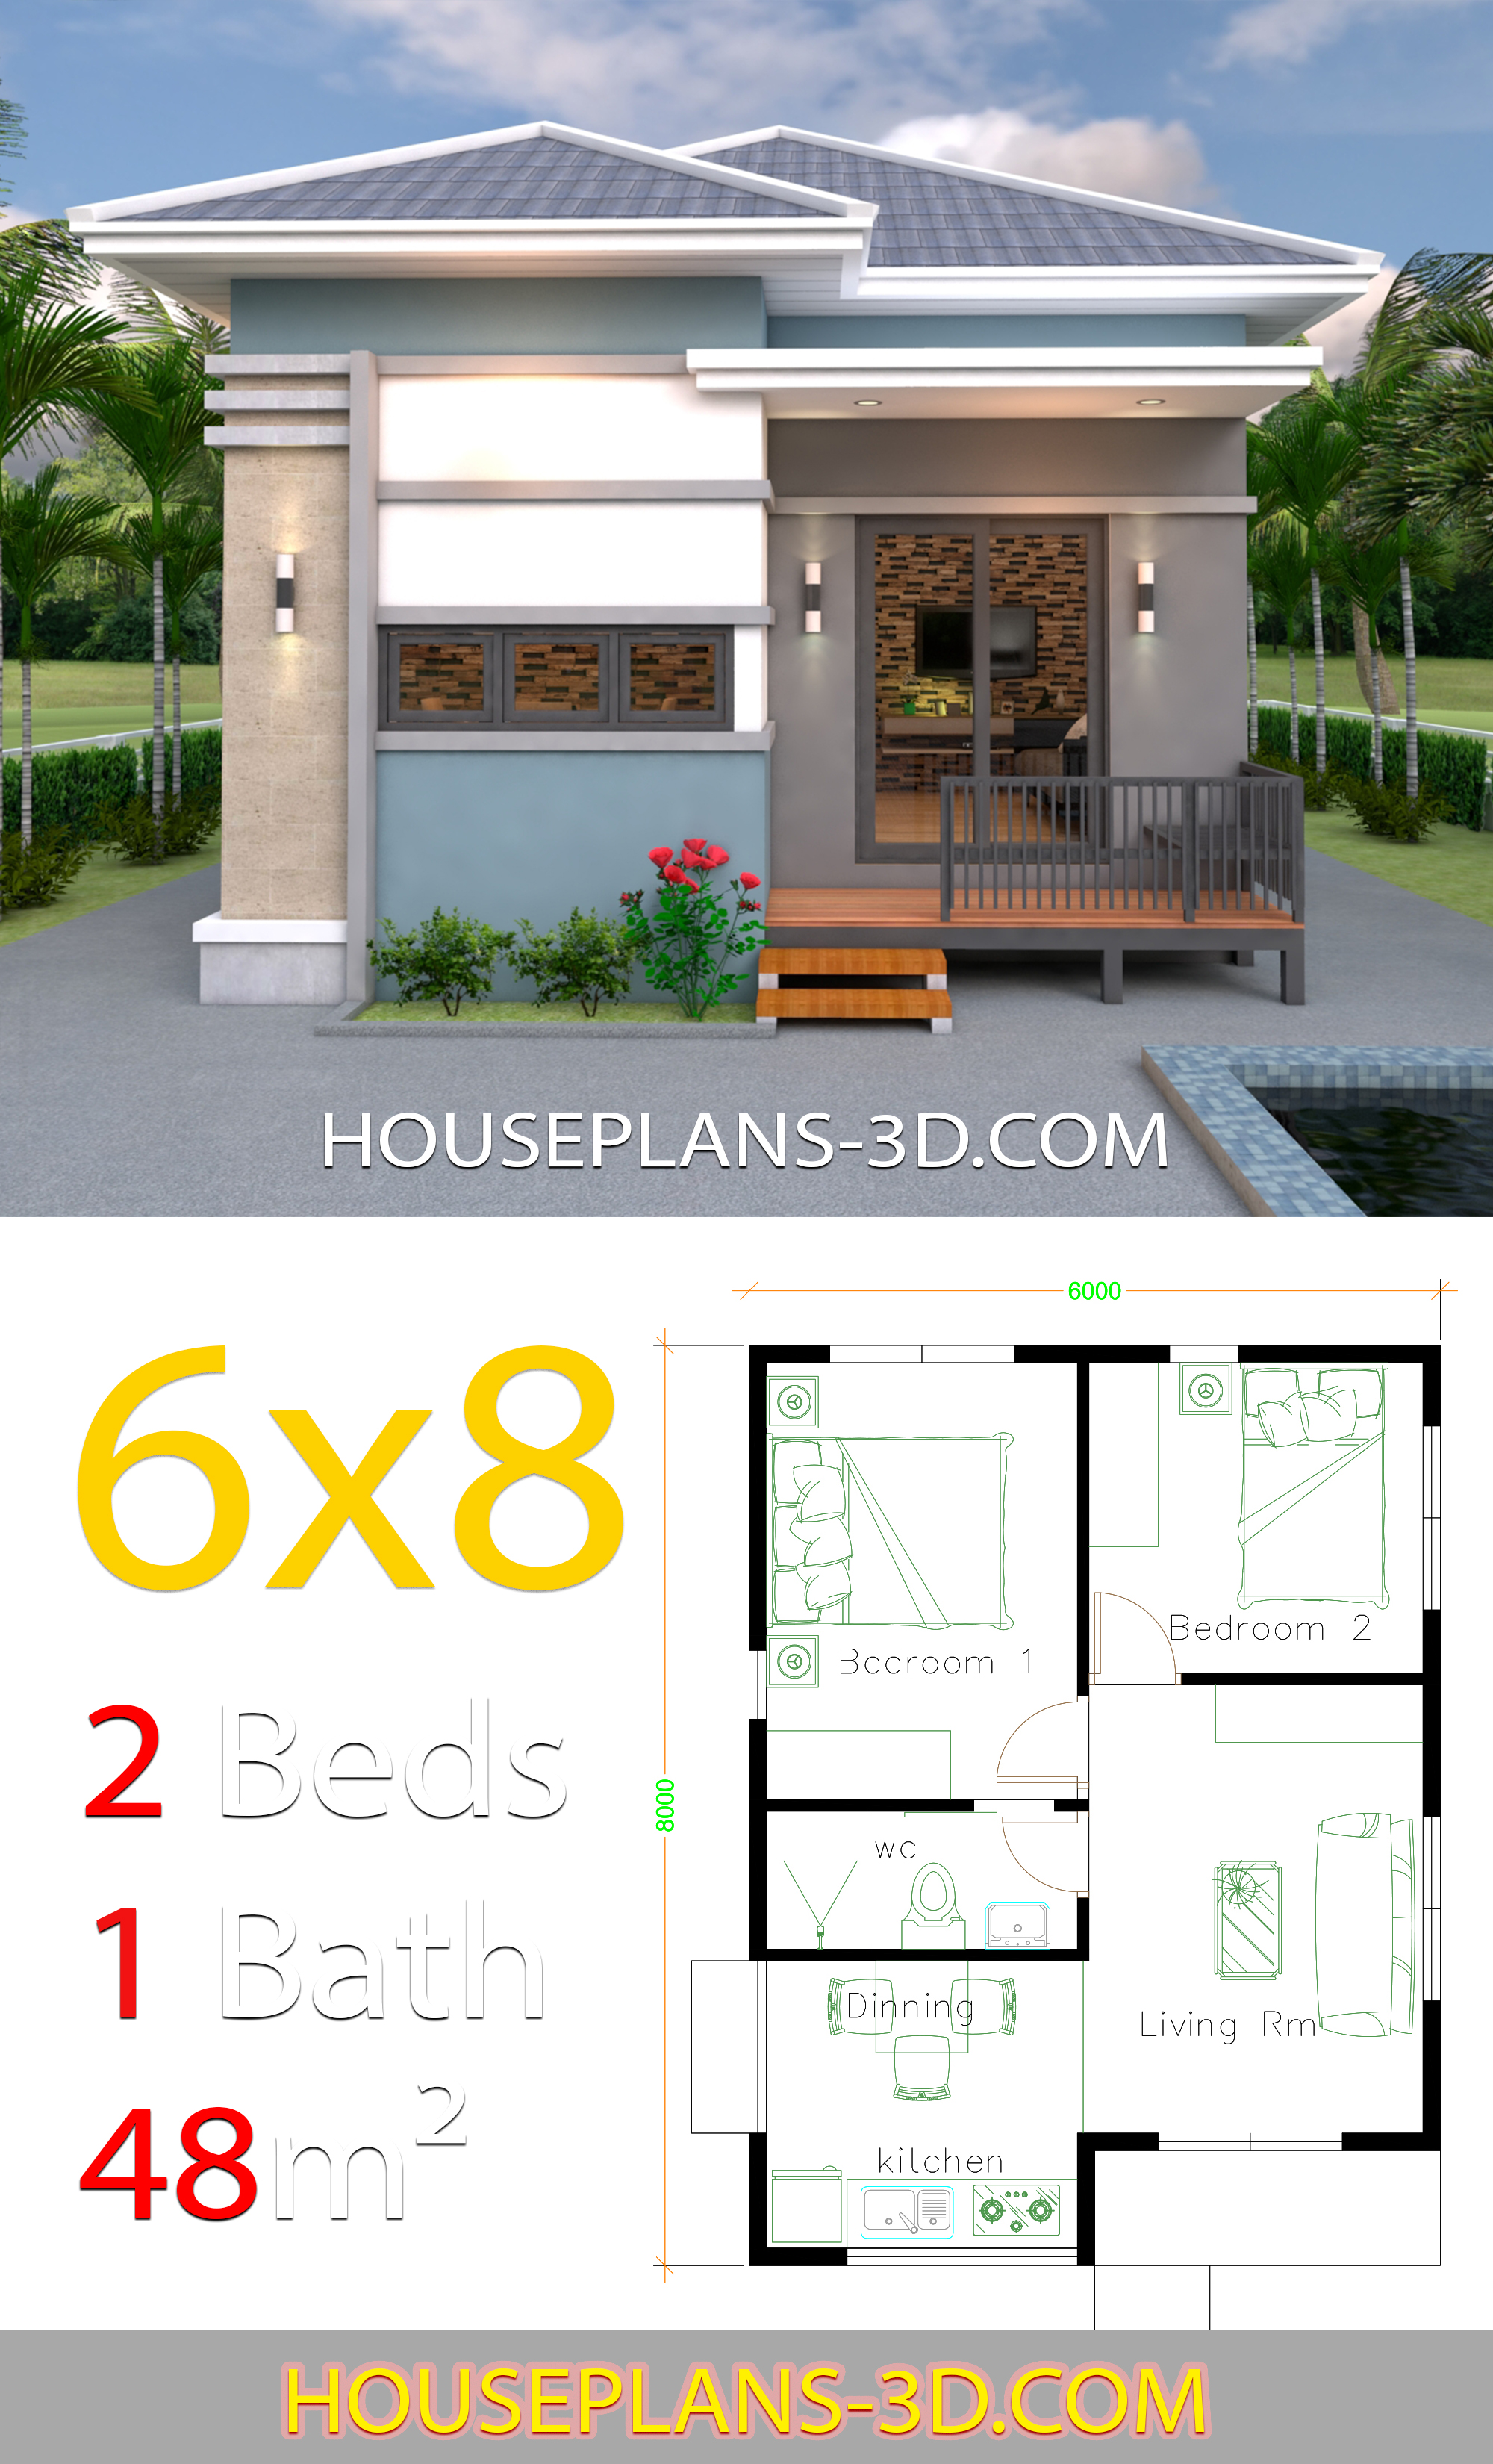 House Design 6x8 with 2 Bedrooms Hip roof - House Plans 3D